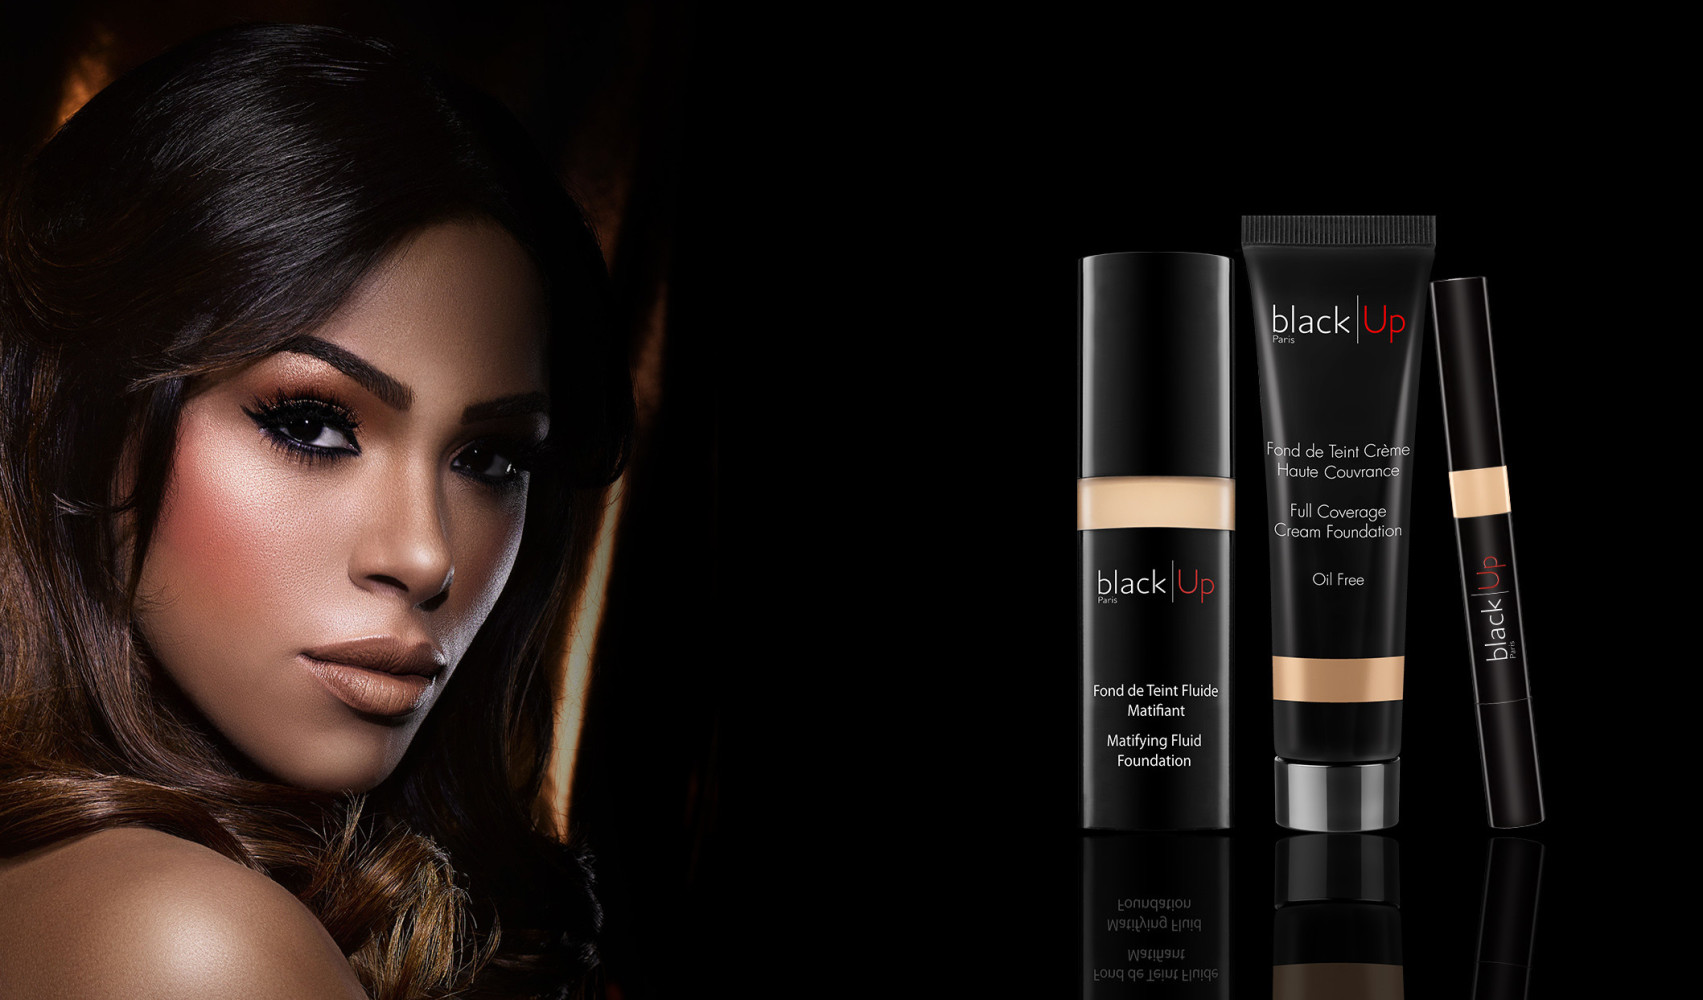 PRUDENCE FOR BLACK UP COSMETICS CAMPAIGN